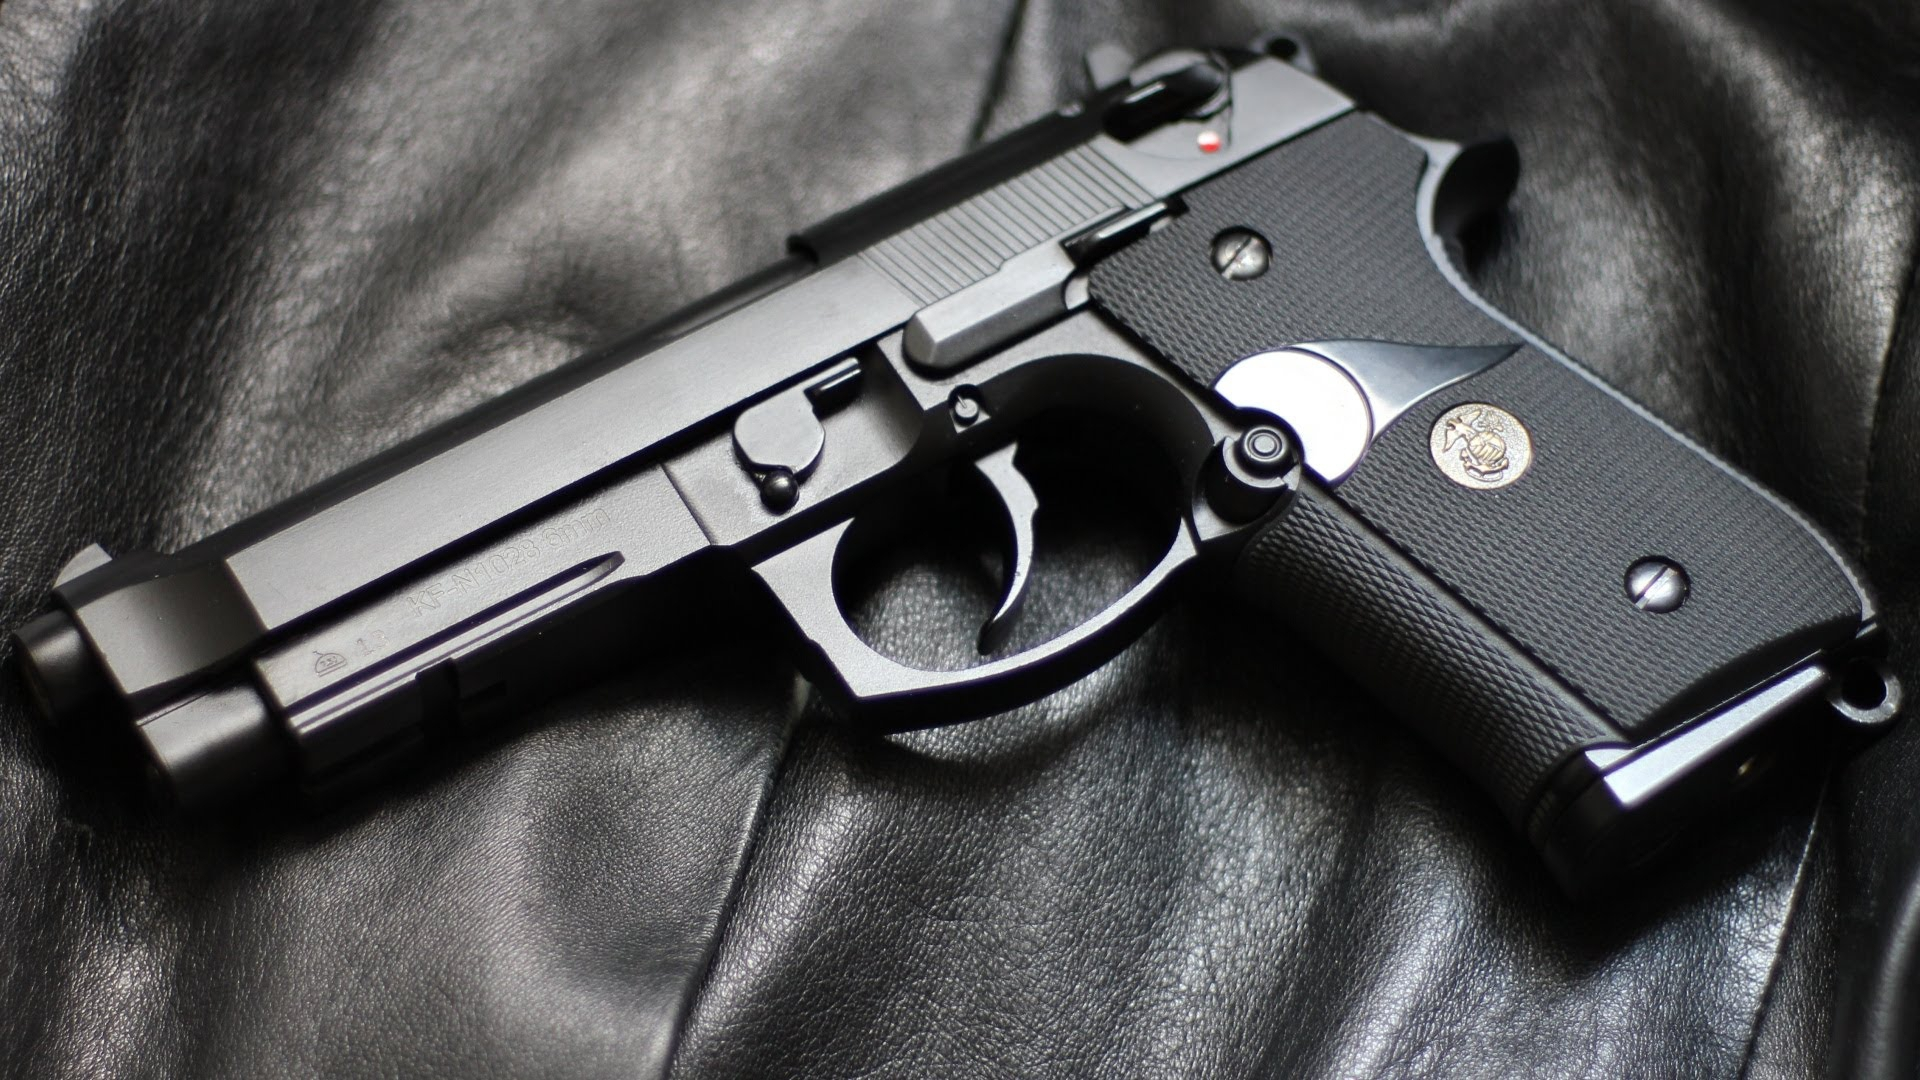 Beretta 92FS Wallpapers Images Photos Pictures Backgrounds 1920x1080